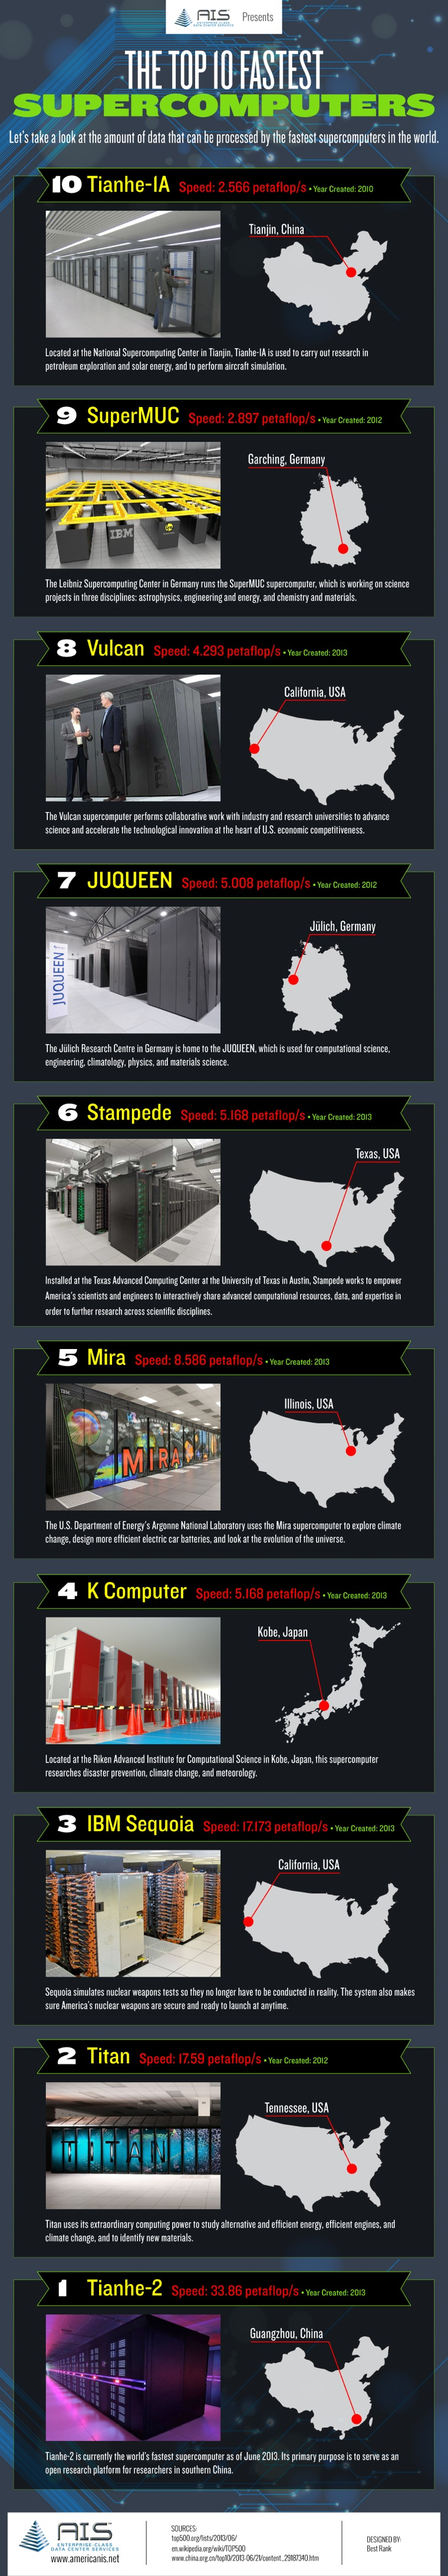 World's 10 Fastest Supercomputers Infographic